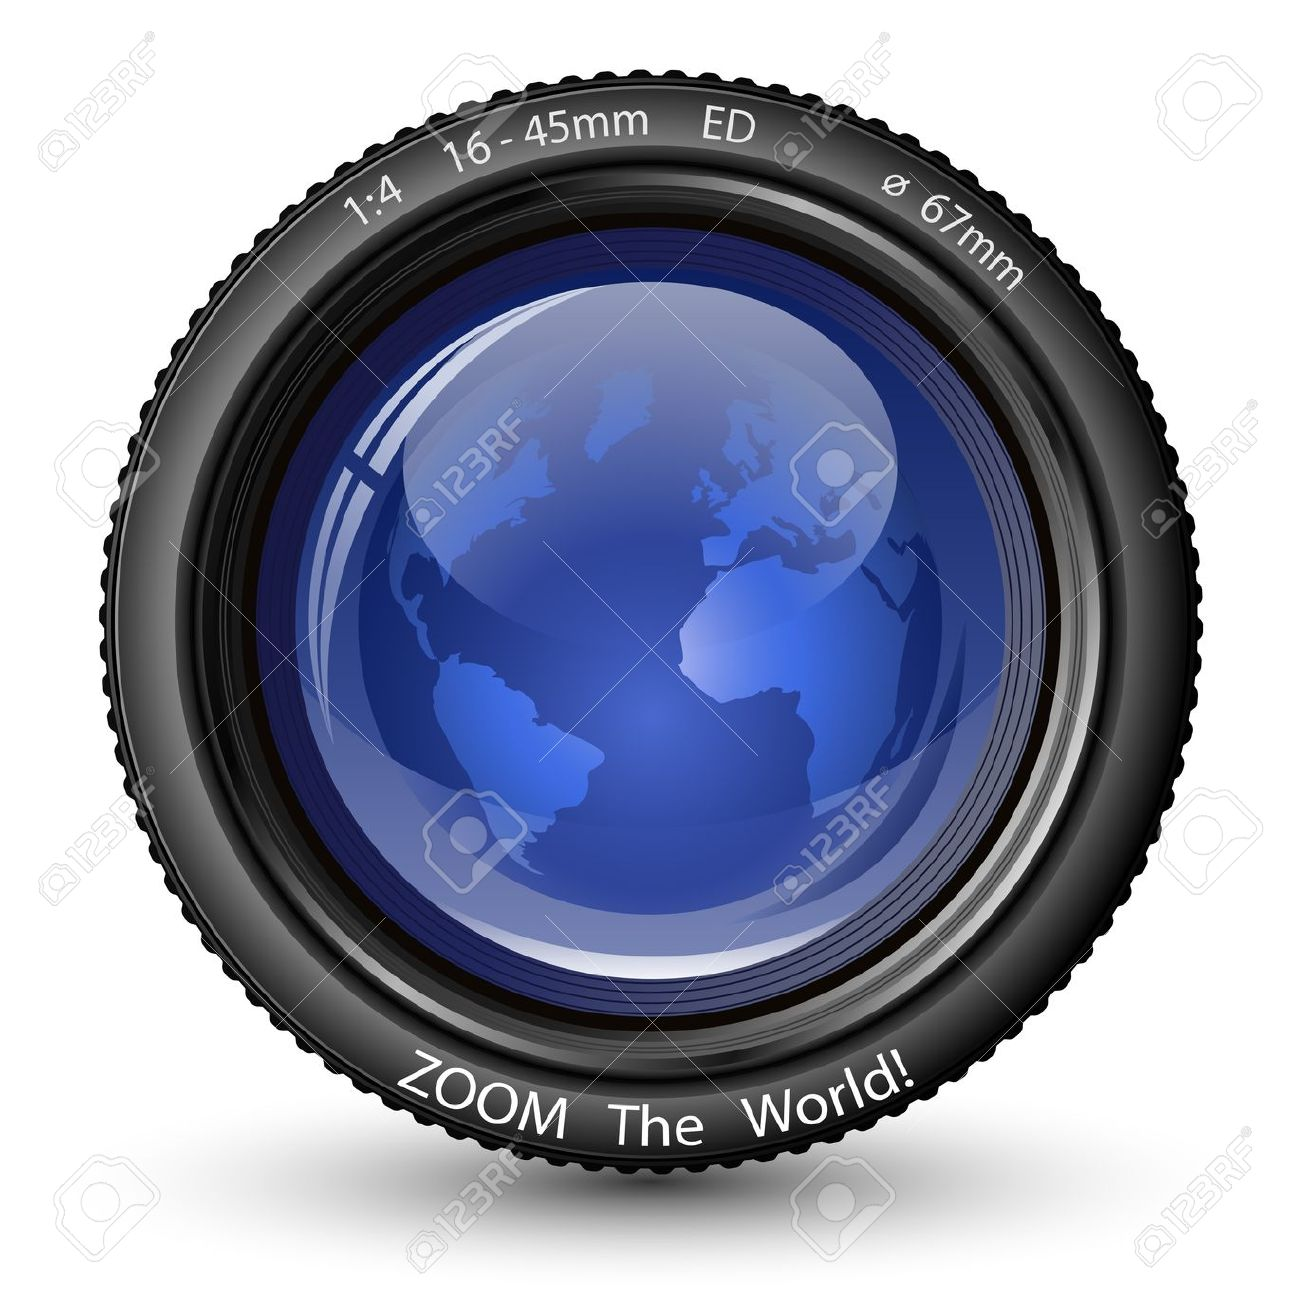 Zoom The World! Vector Illustration Of Camera Lens With Globe.